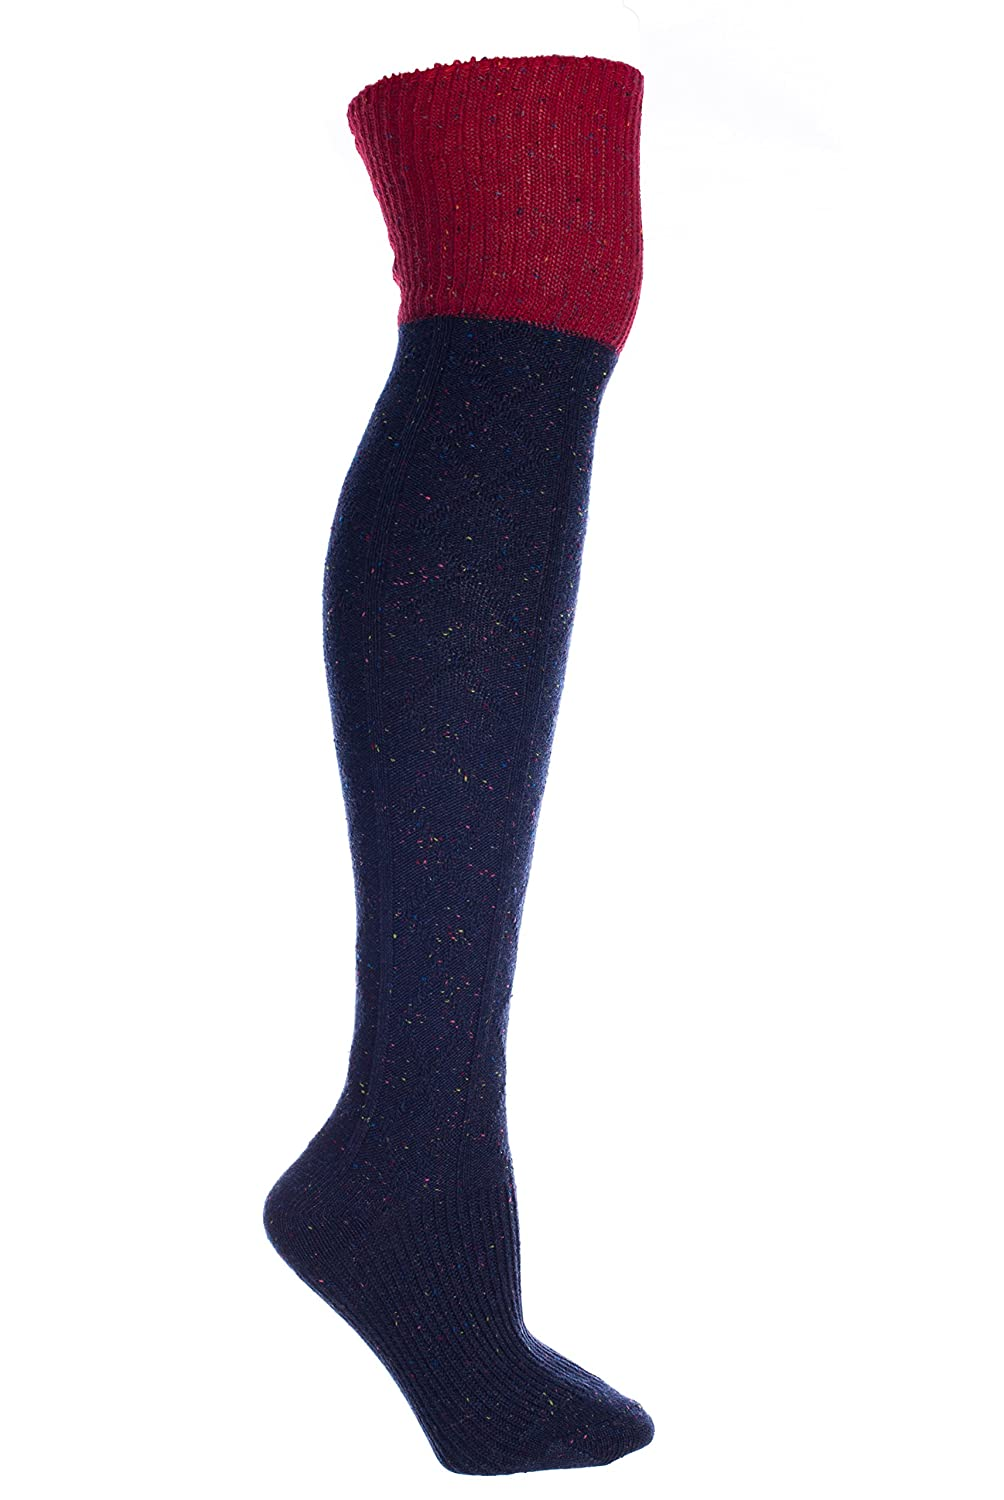 Wool Speckled Knee High Boot Socks with Welt